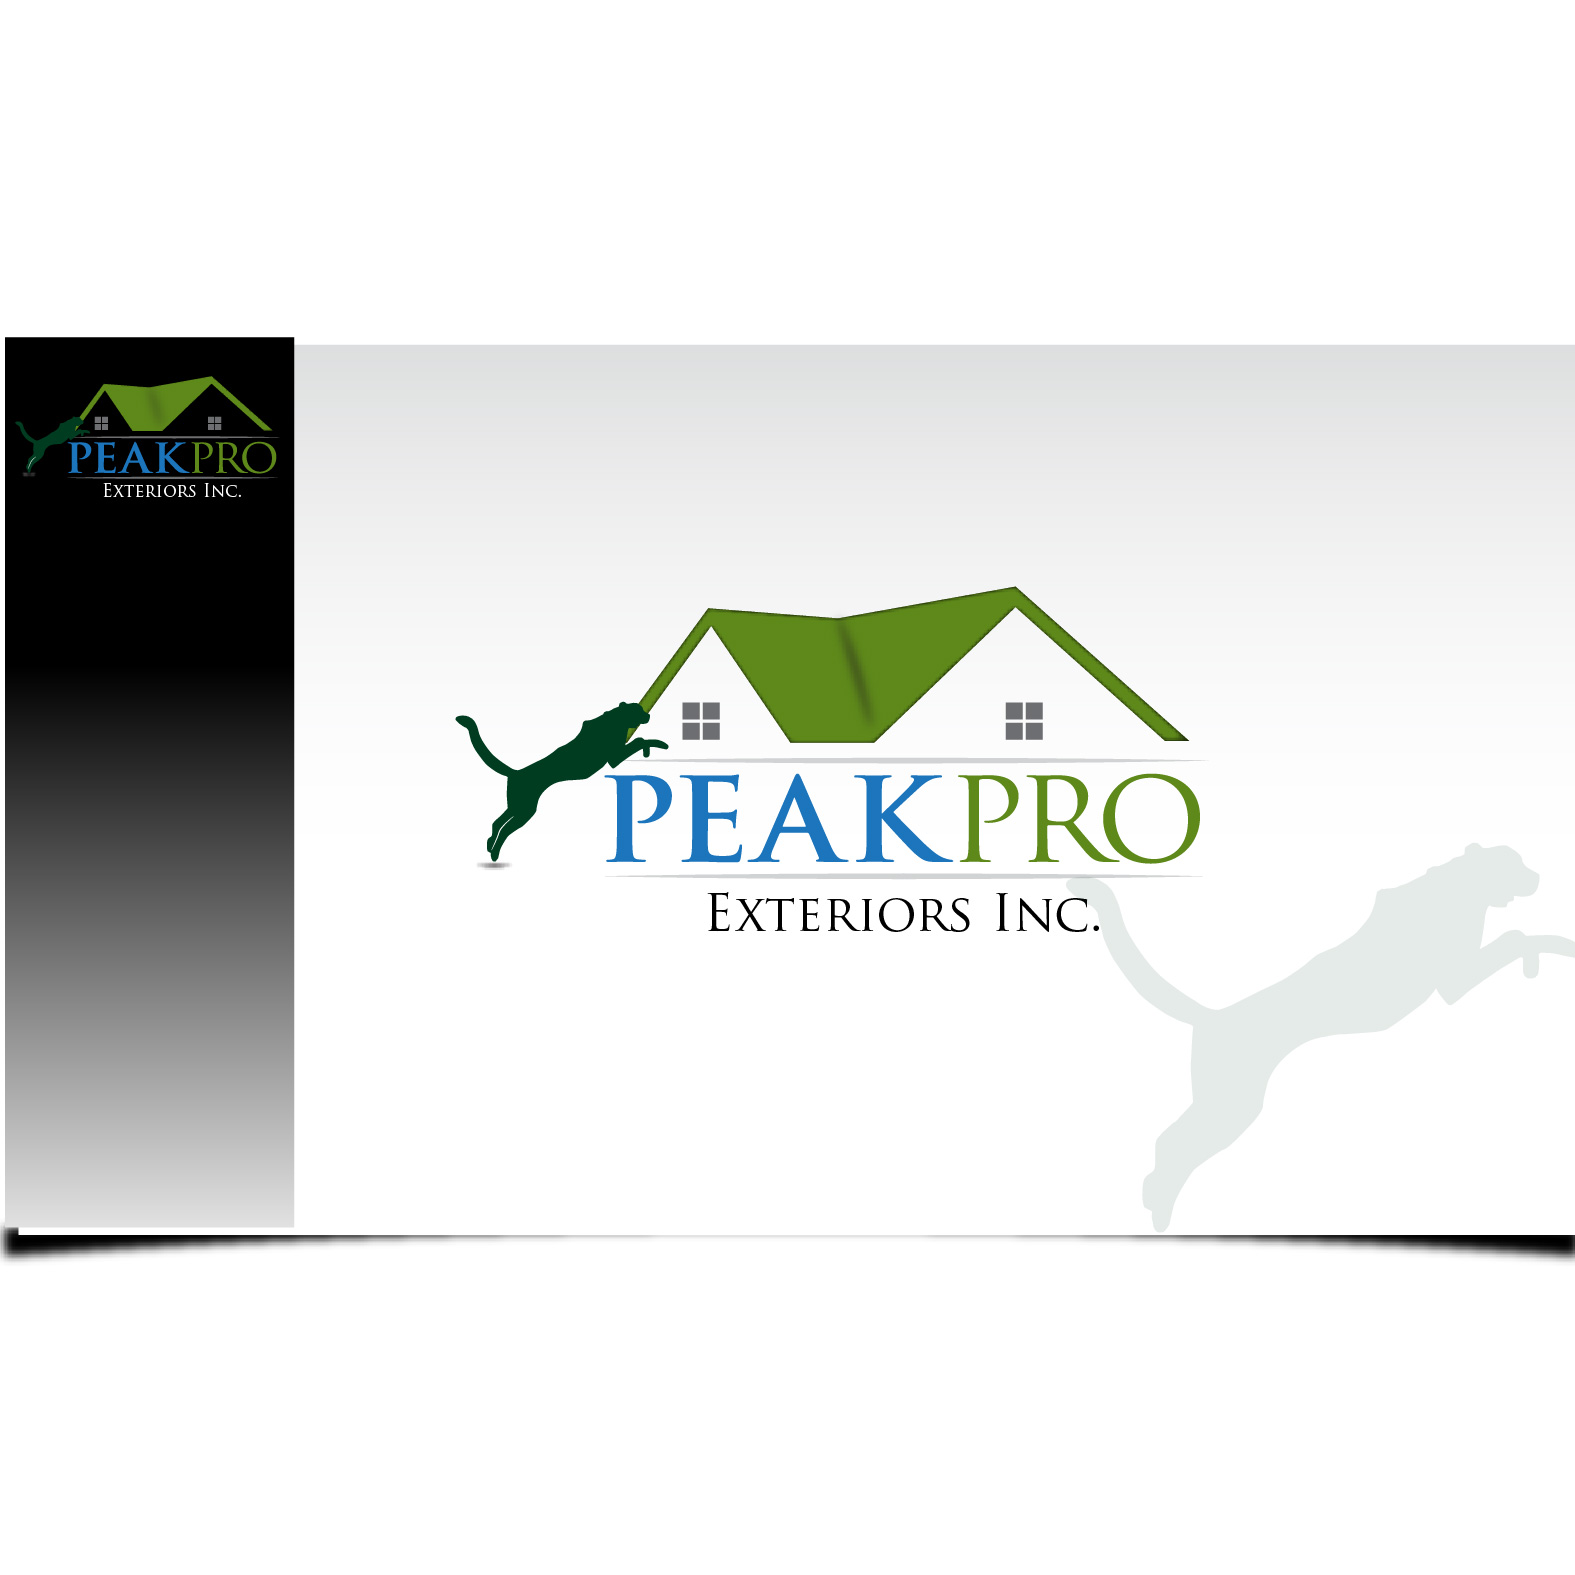 Logo Design by Robert Engi - Entry No. 120 in the Logo Design Contest Captivating Logo Design for Peakpro Exteriors Inc..